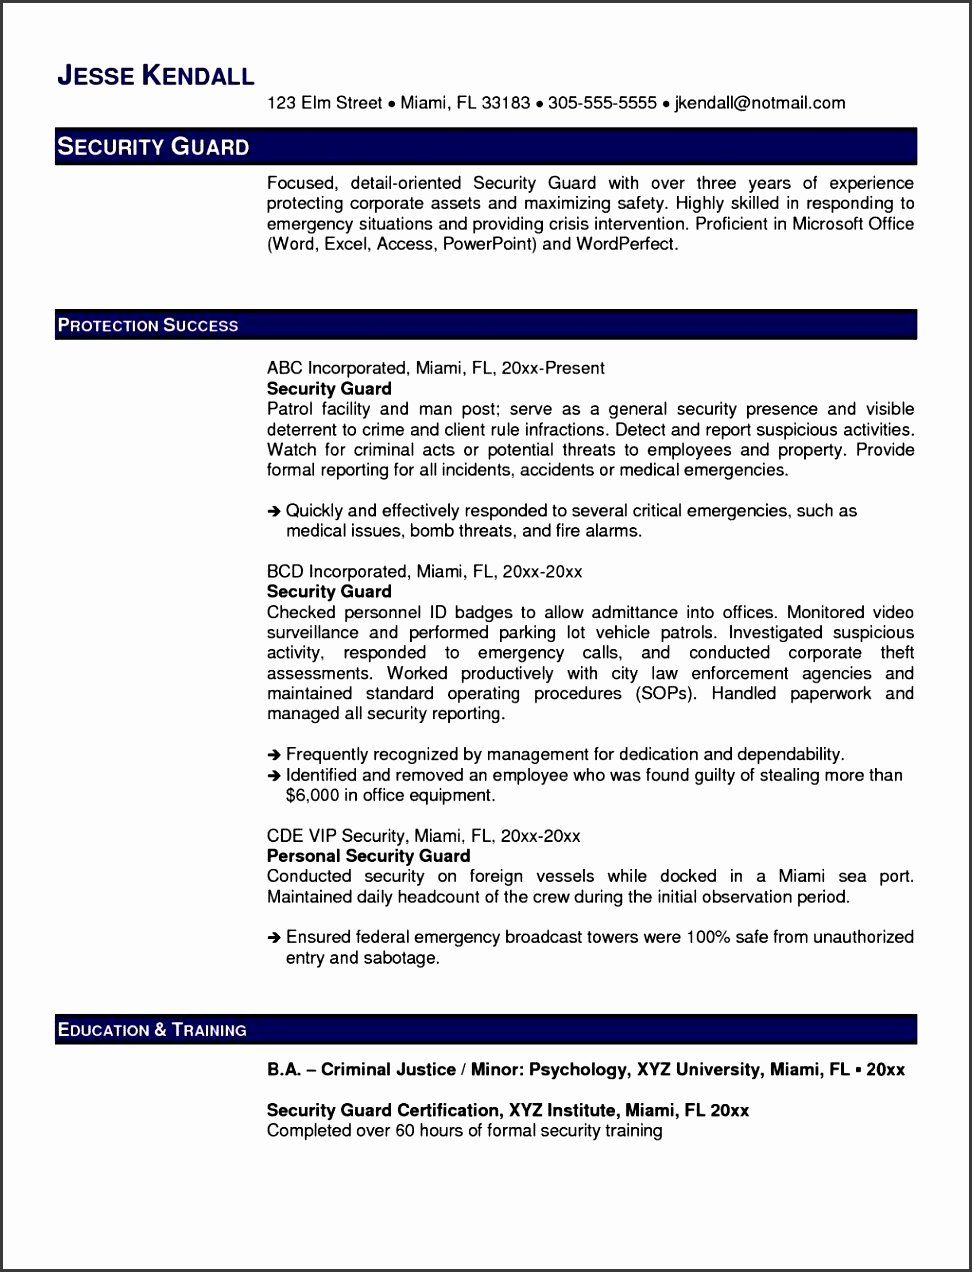 Security Daily Activity Report Template In 2020 Security Resume